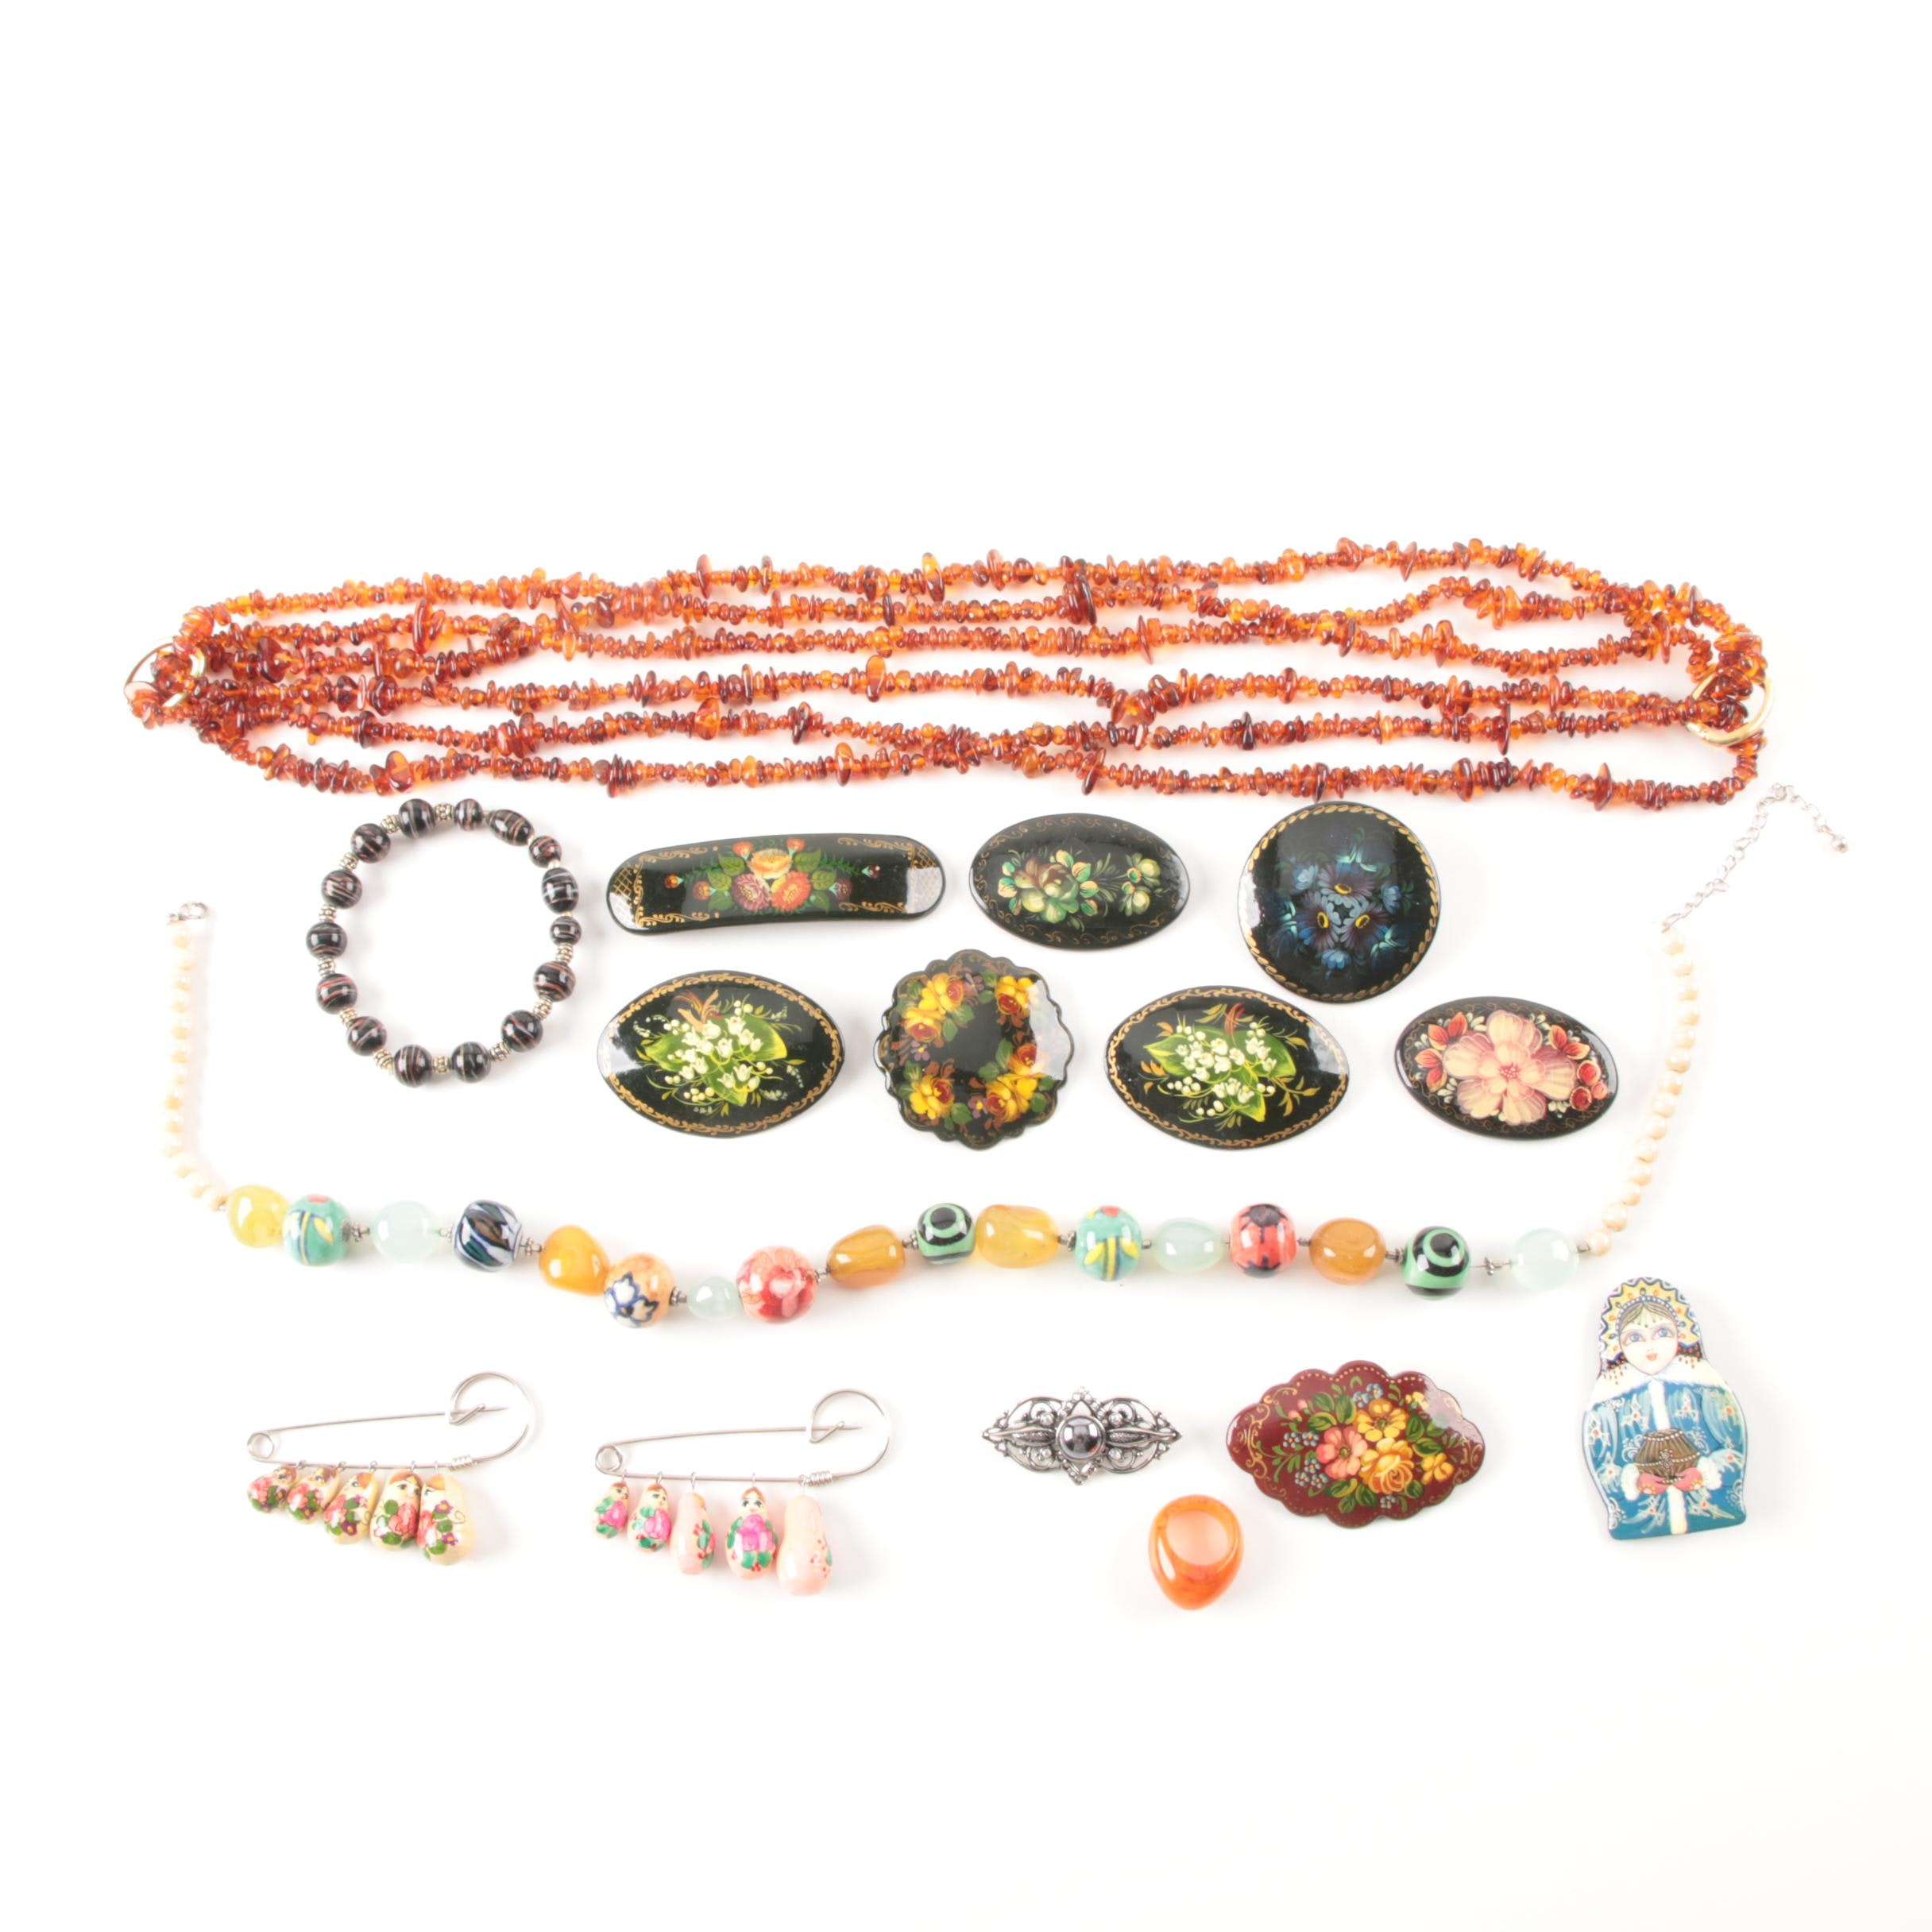 Silver Tone Agate, Amber, and Glass Jewelry